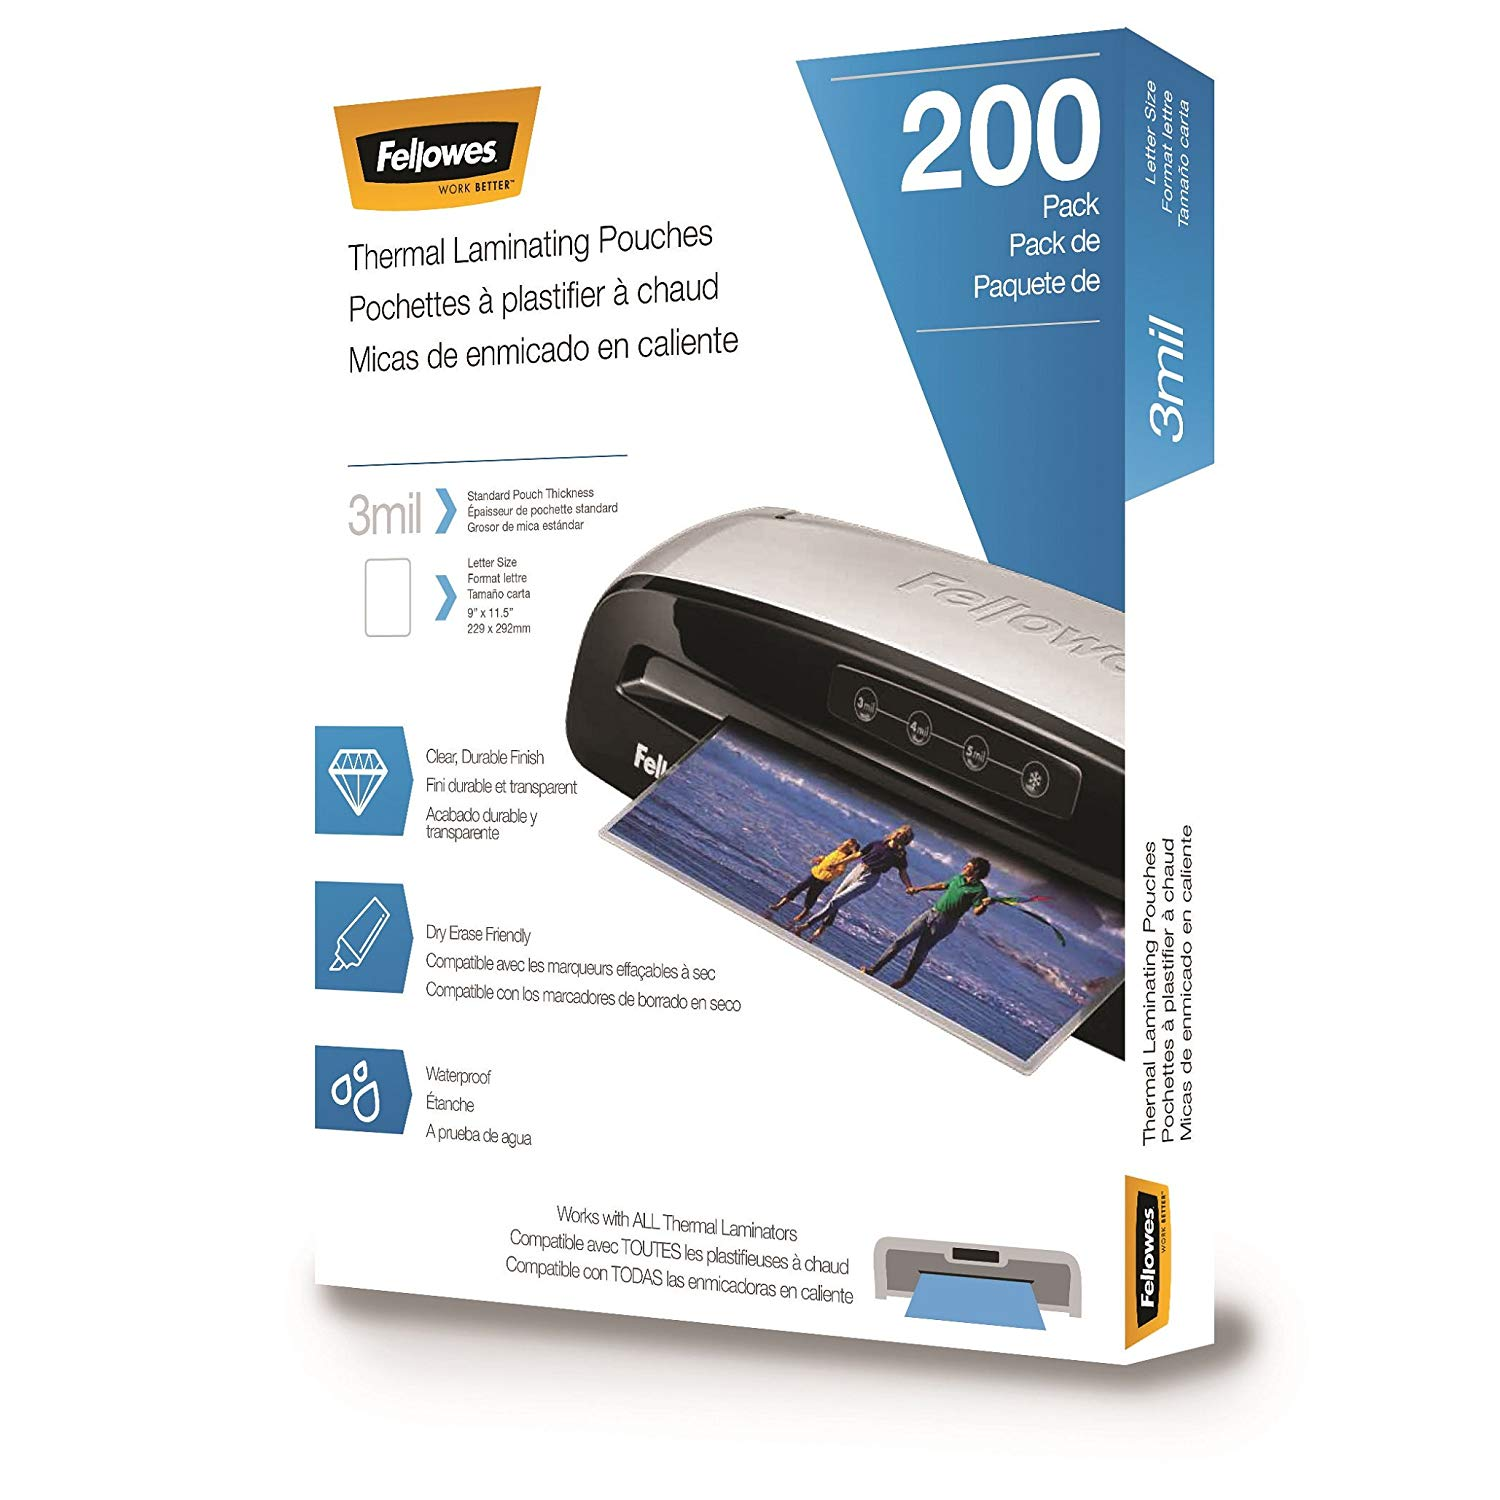 Fellowes Thermal Laminating Pouches, 3 mils, 200 Pack – 5743401